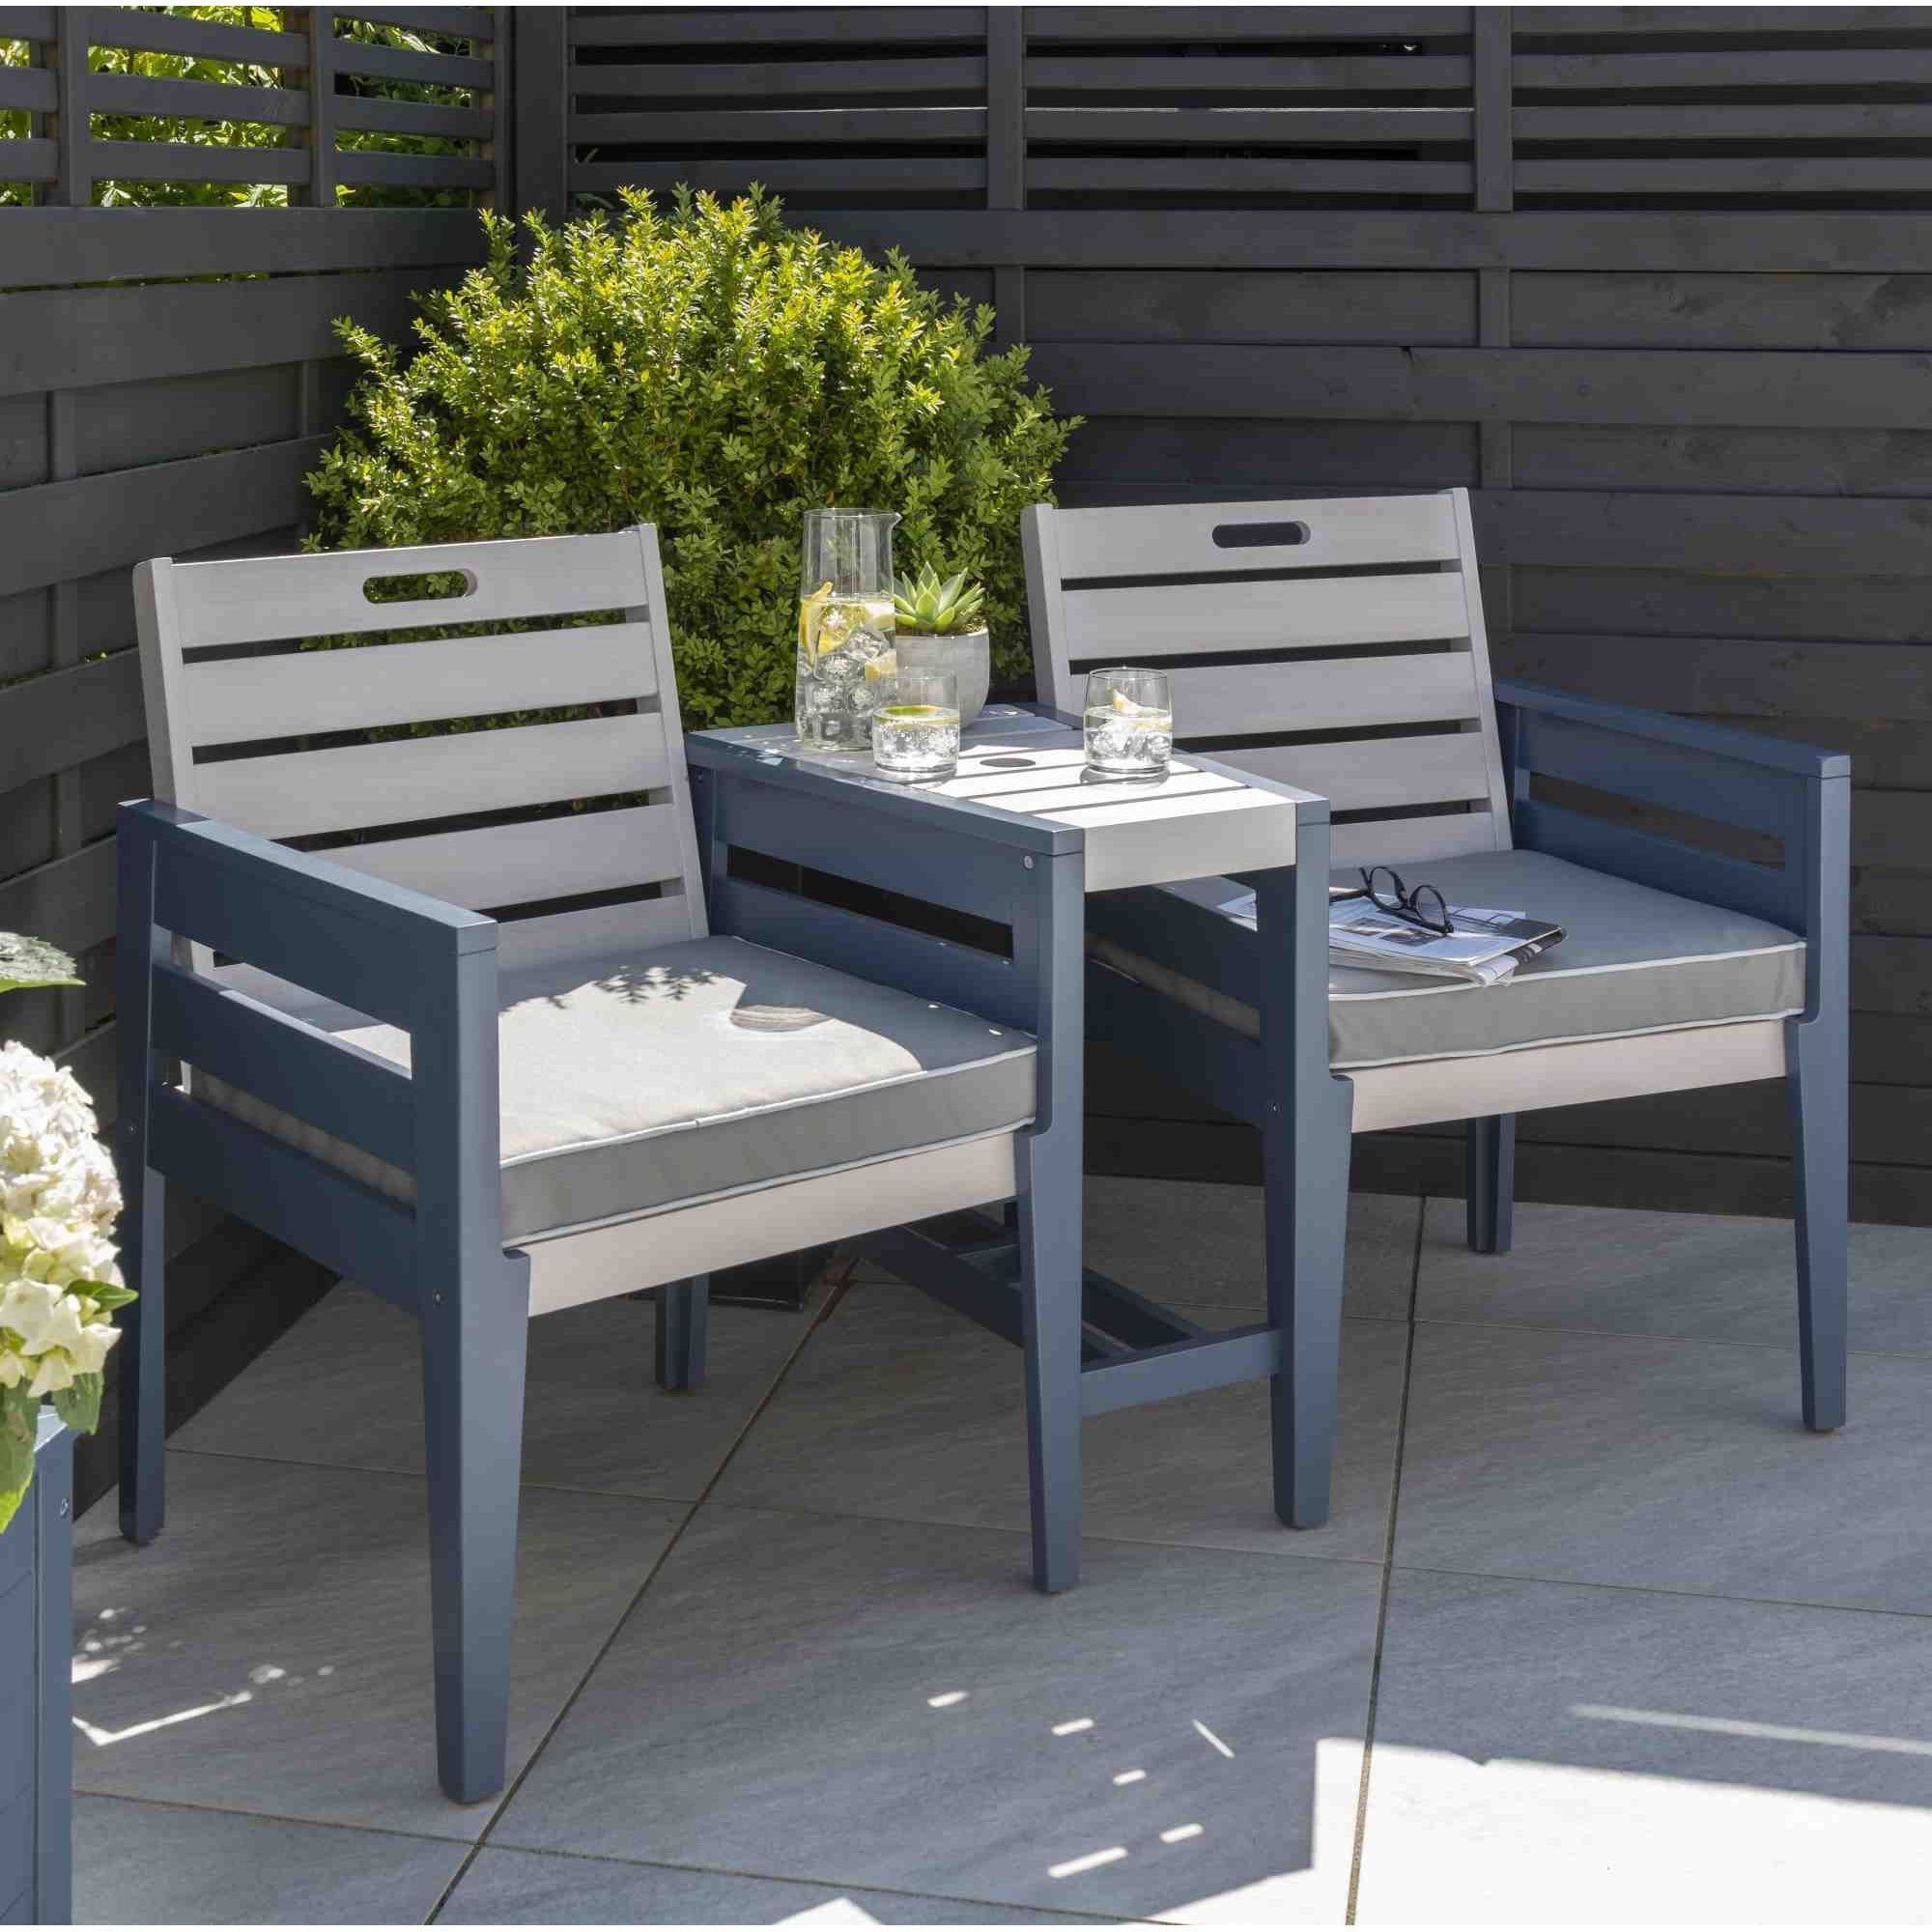 Widely Used Wicker Tete A Tete Benches Pertaining To Norfolk Leisure Galaxy Tete A Tete Bench Set (View 29 of 30)